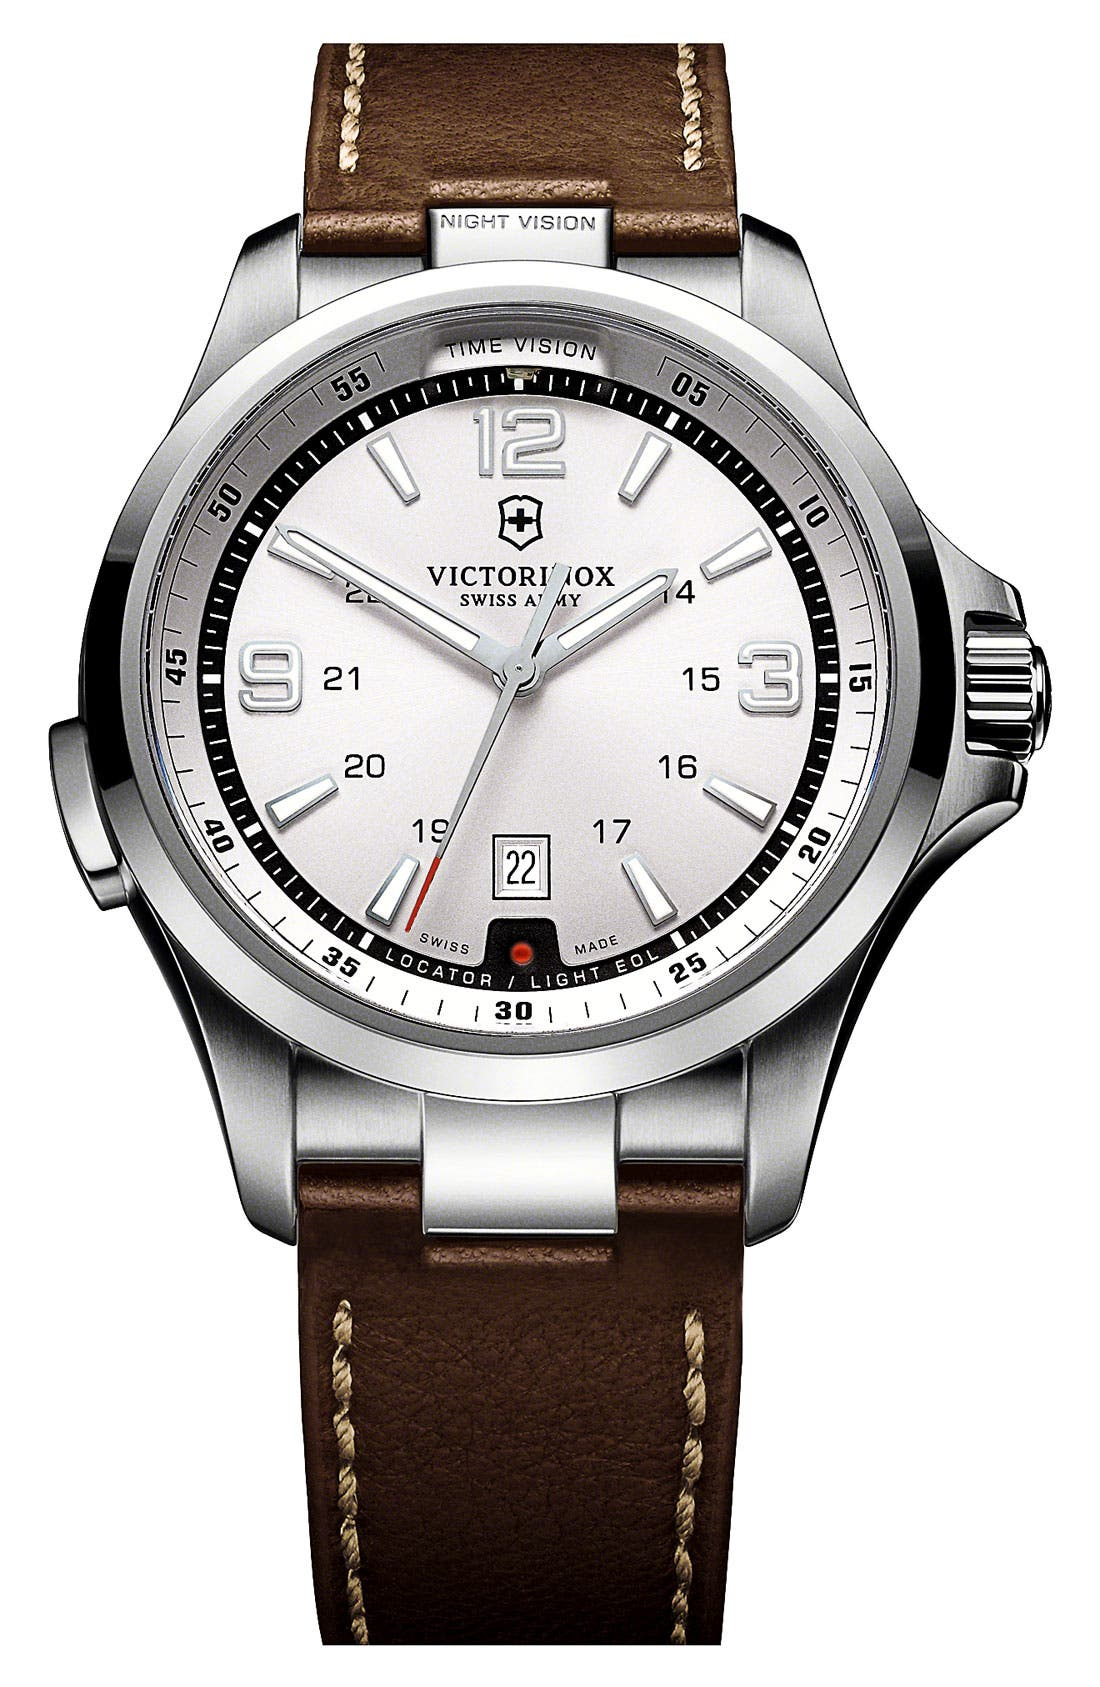 Main Image - Victorinox Swiss Army® 'Night Vision' Leather Strap Watch, 42mm